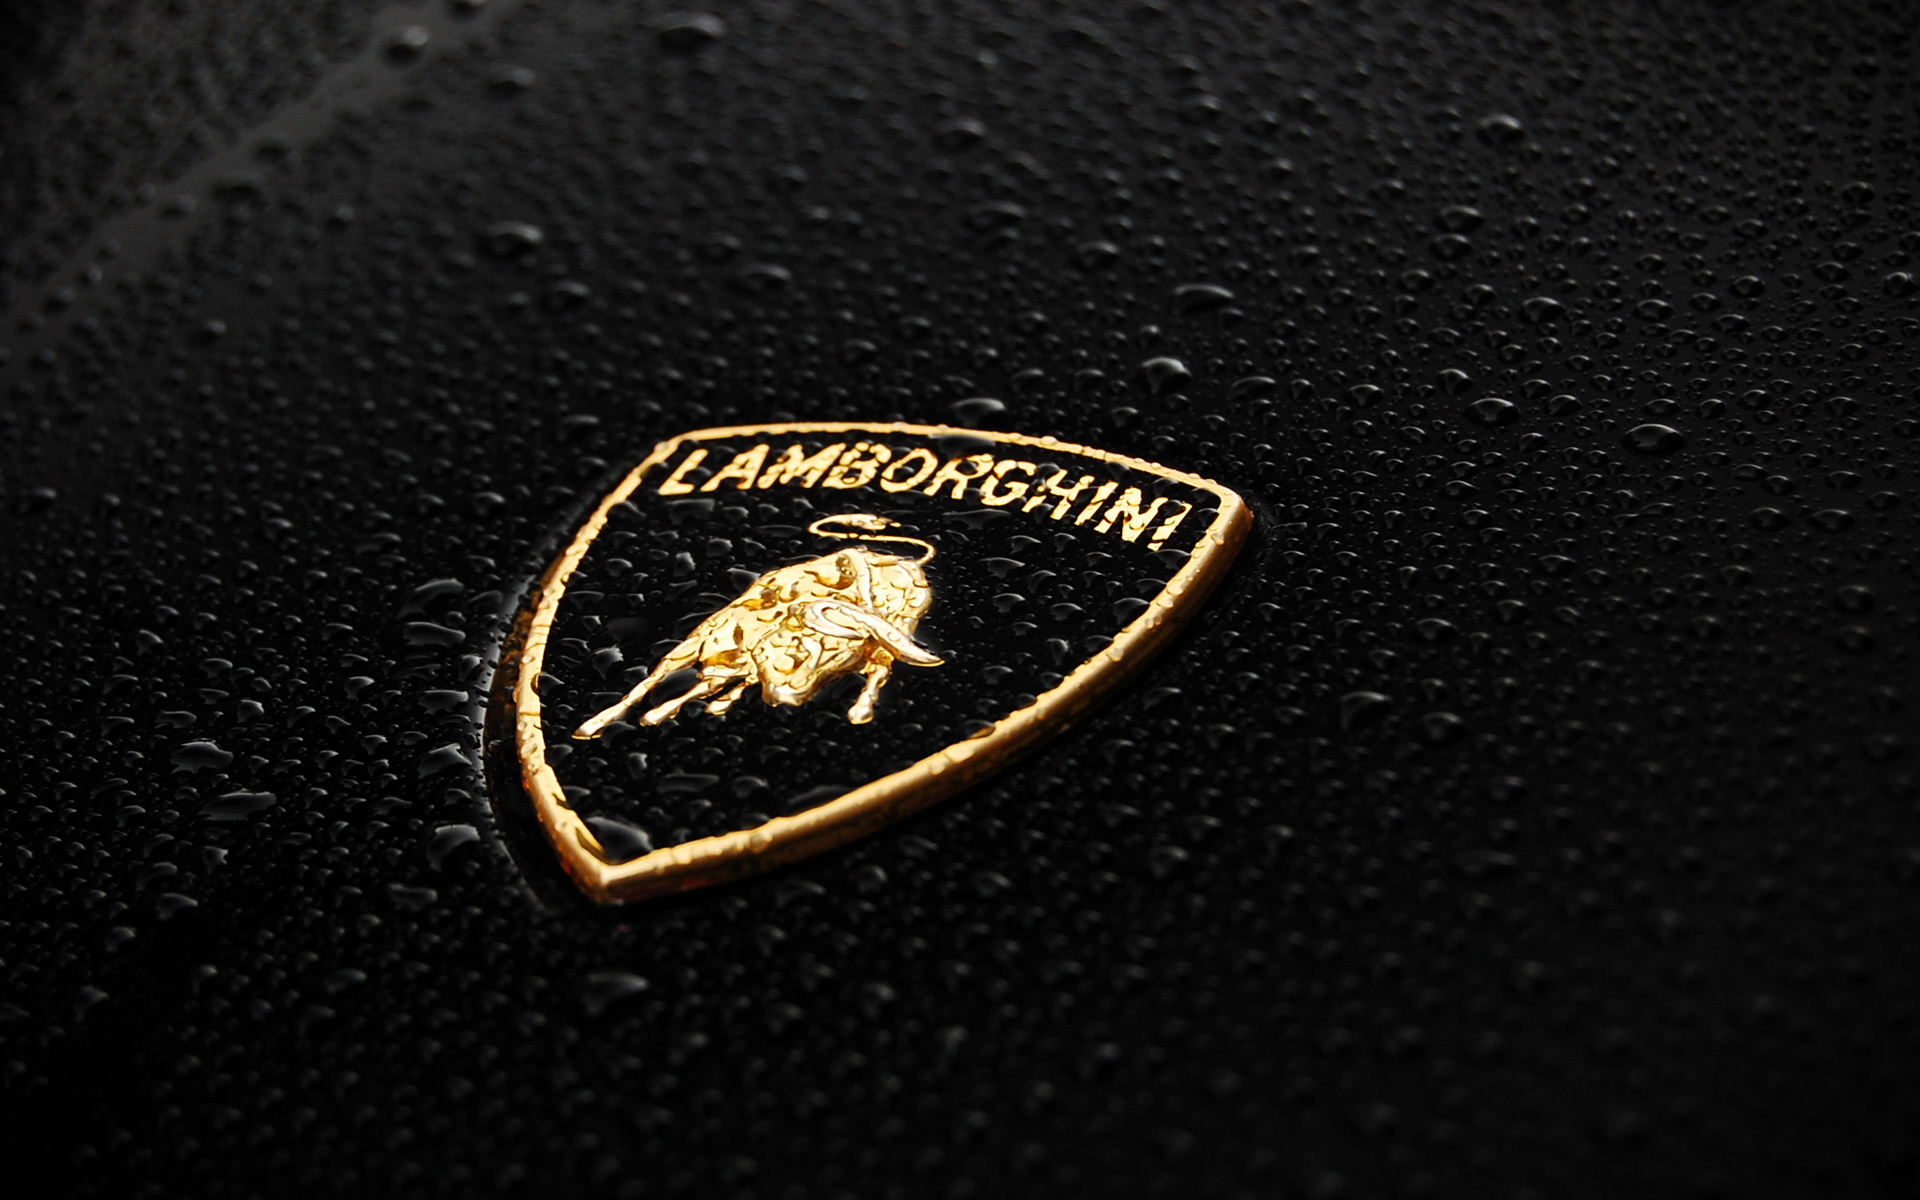 lamborghini logo wallpaper | hd car wallpapers